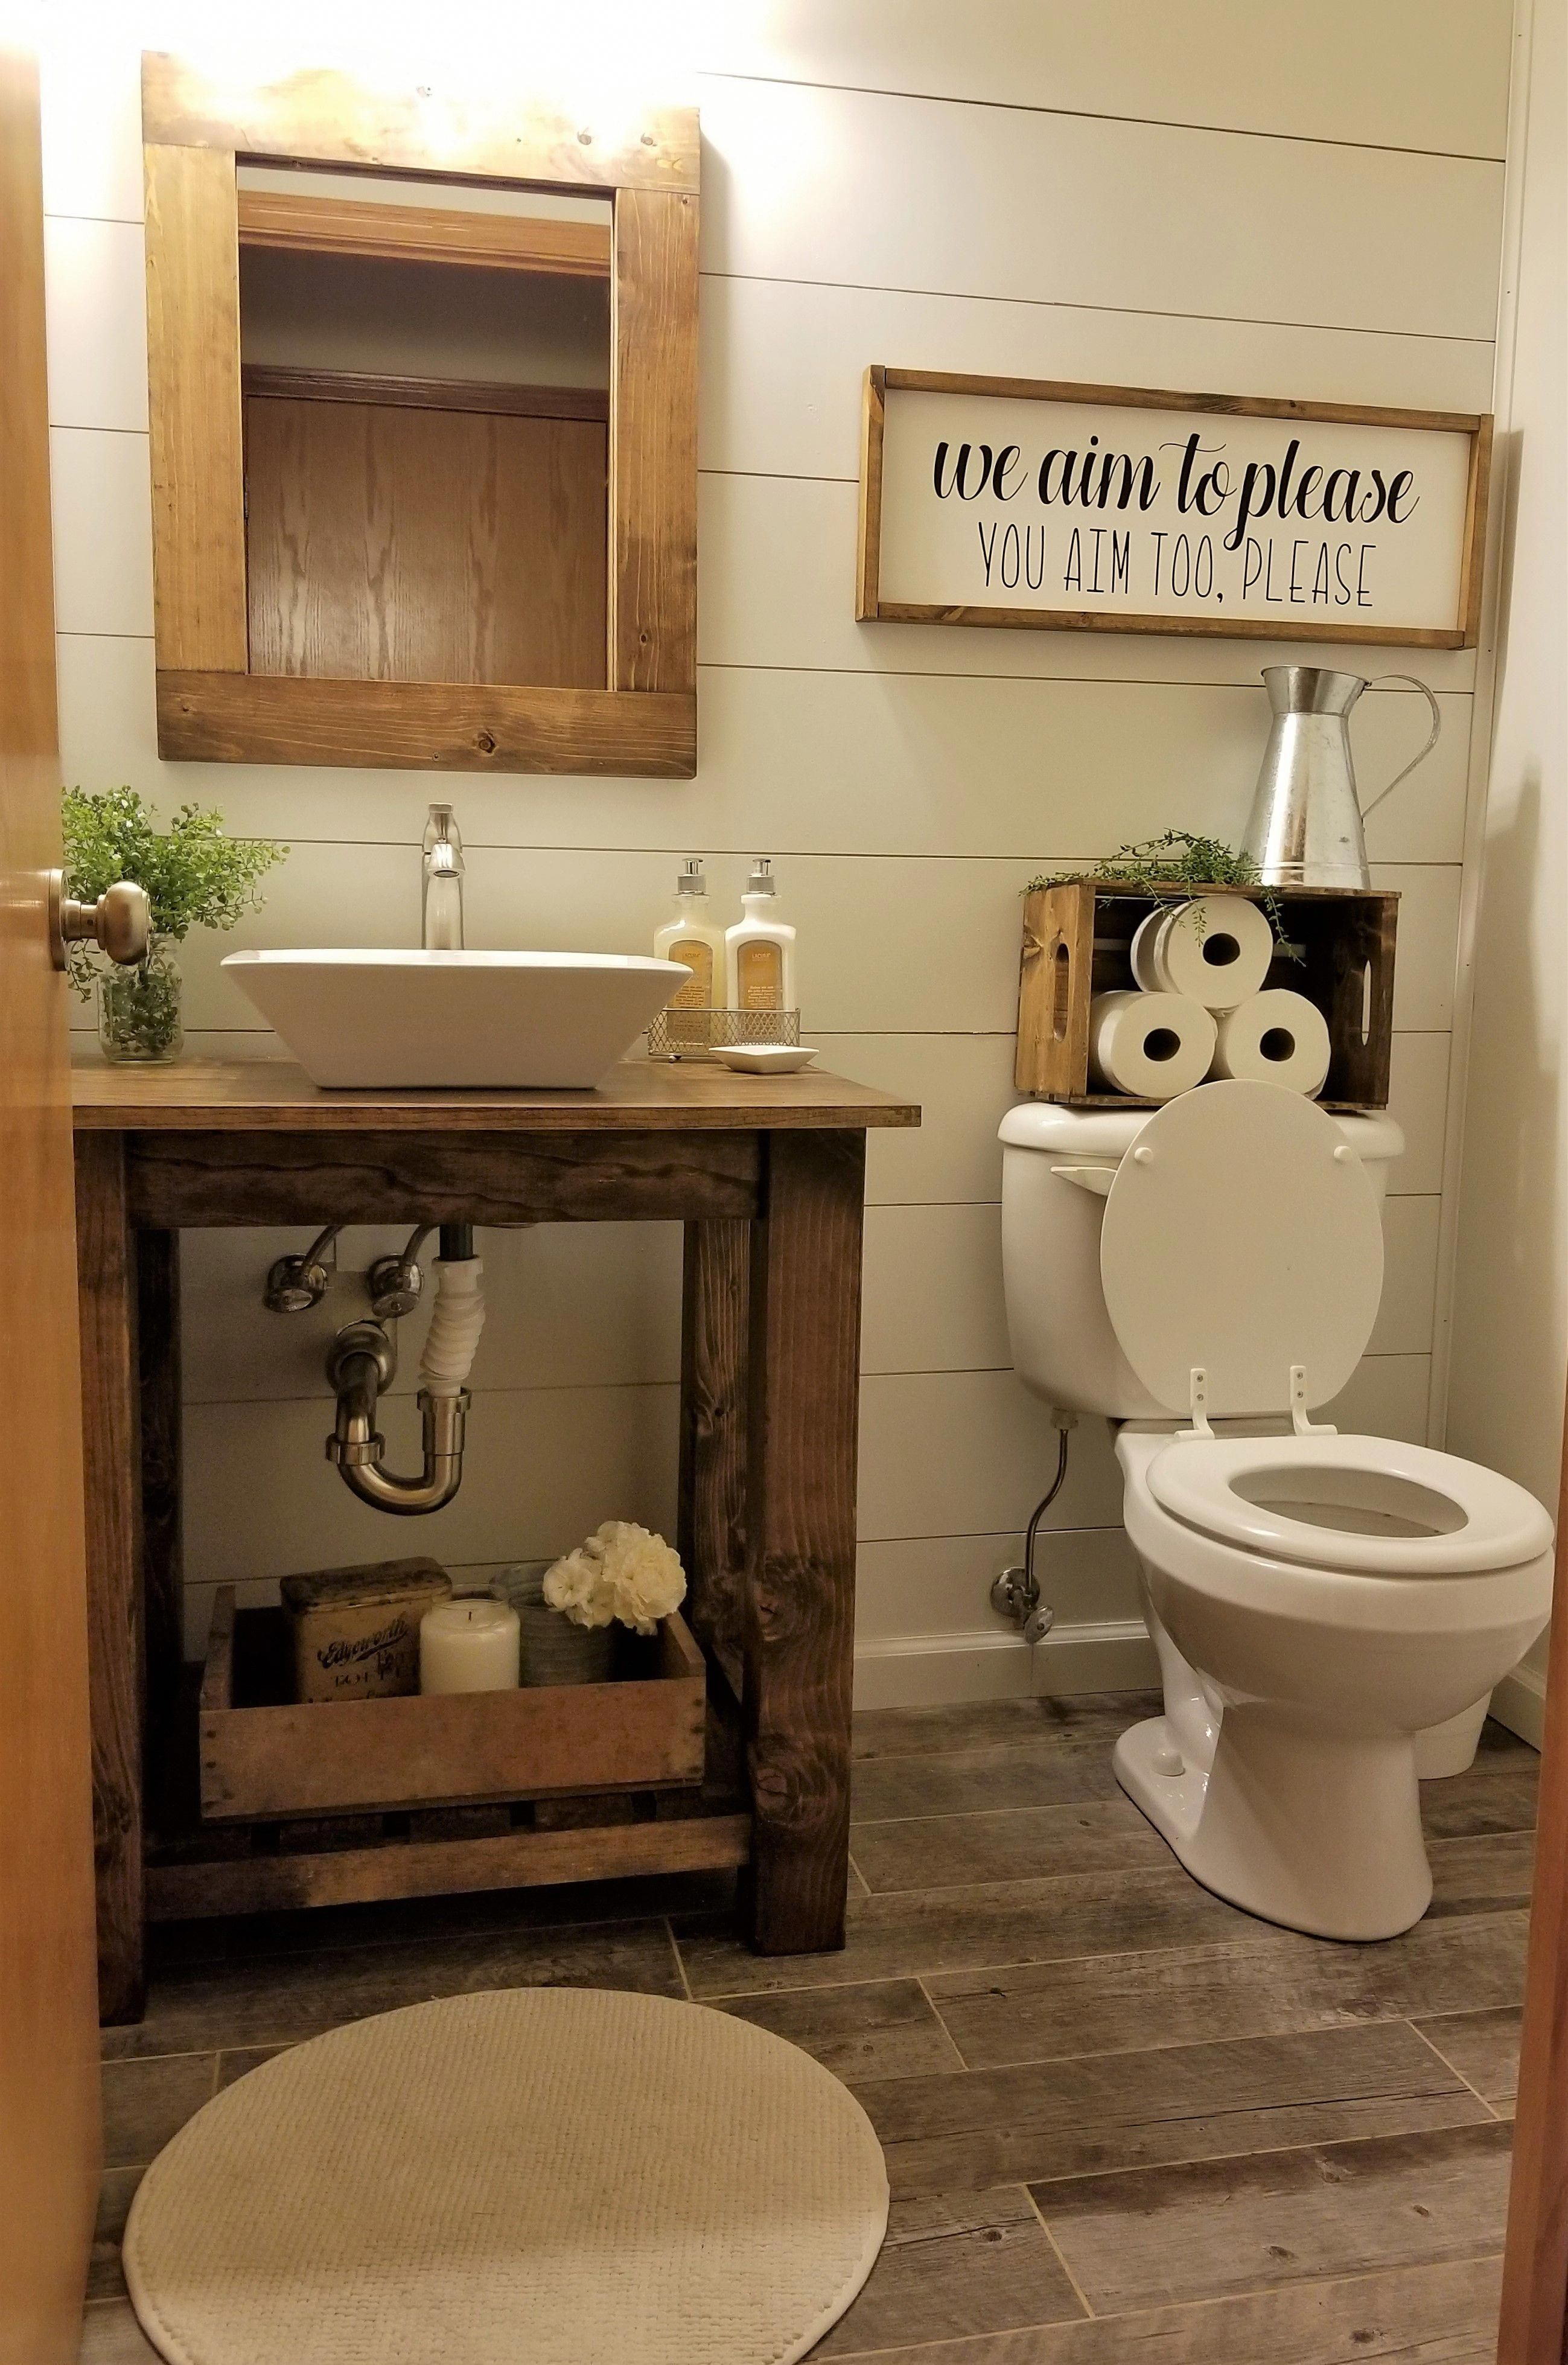 23 vanities bathroom ideas to get your best rustic on bathroom renovation ideas on a budget id=70706